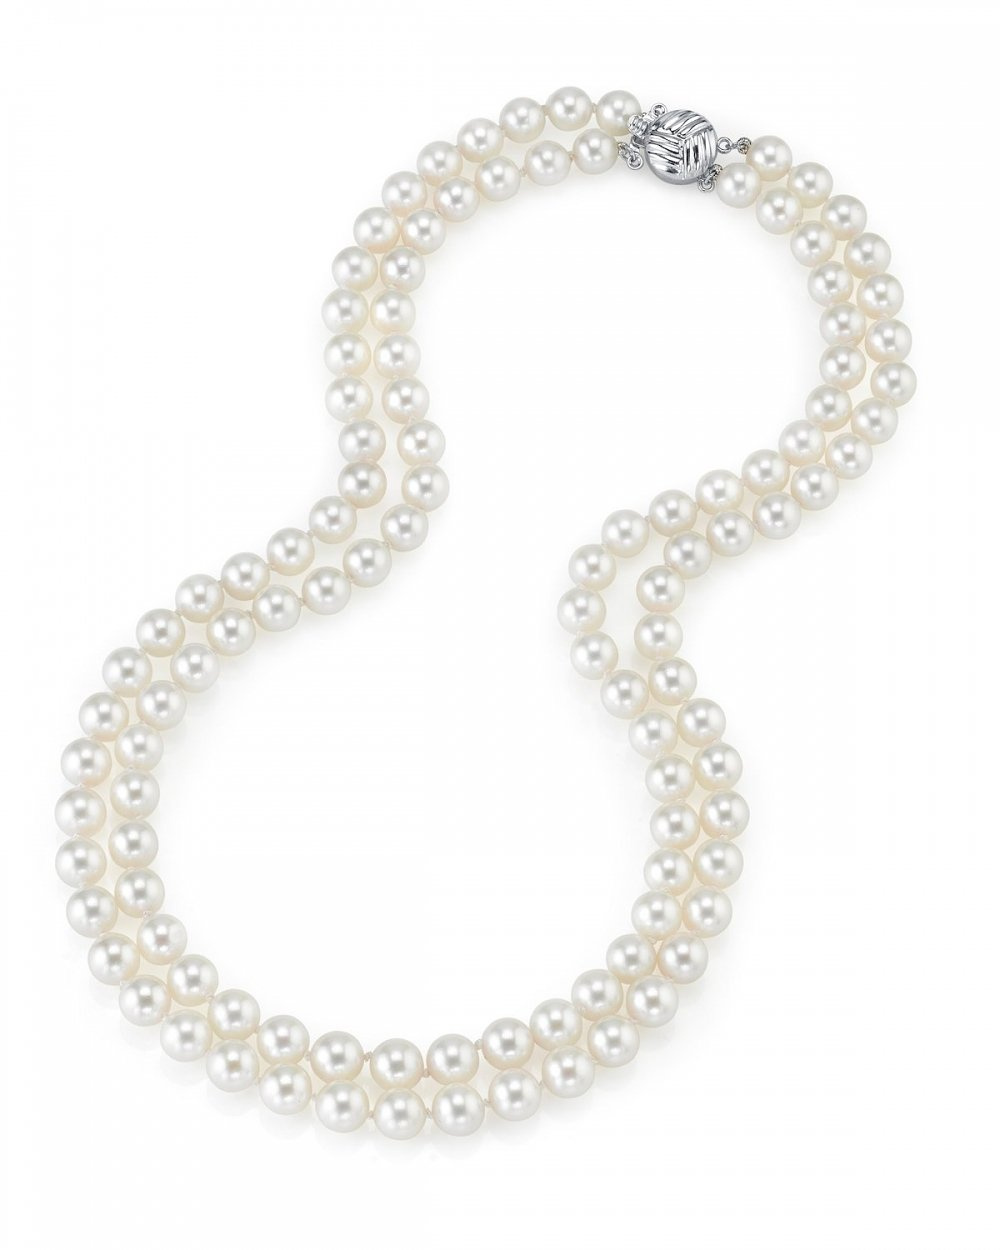 THE PEARL SOURCE 14K Gold 7-8mm AAA Quality Double Strand White Freshwater Cultured Pearl Necklace for Women in 17-18'' Princess Length